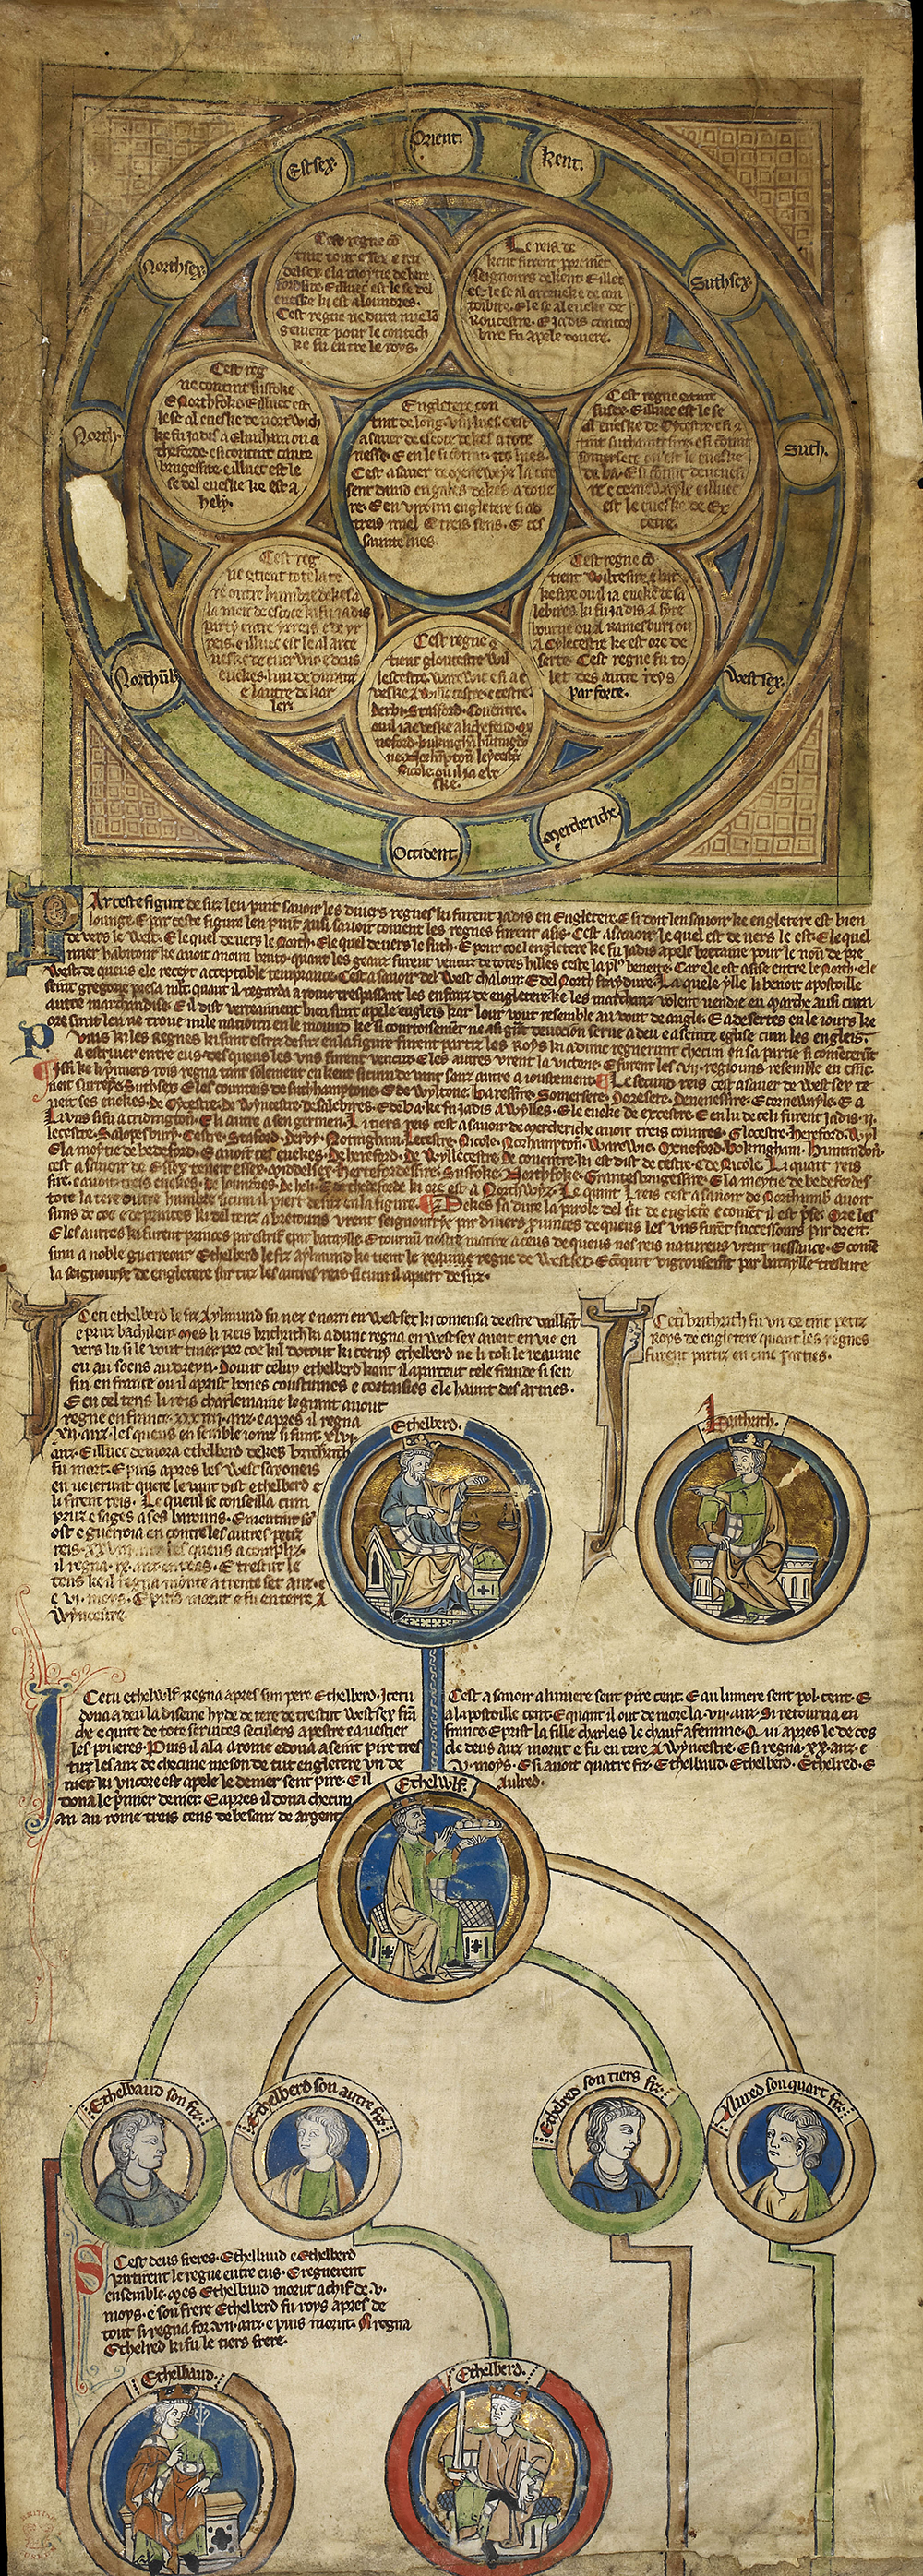 Section from the genealogical roll of the kings of England, c. 1300. British Library.